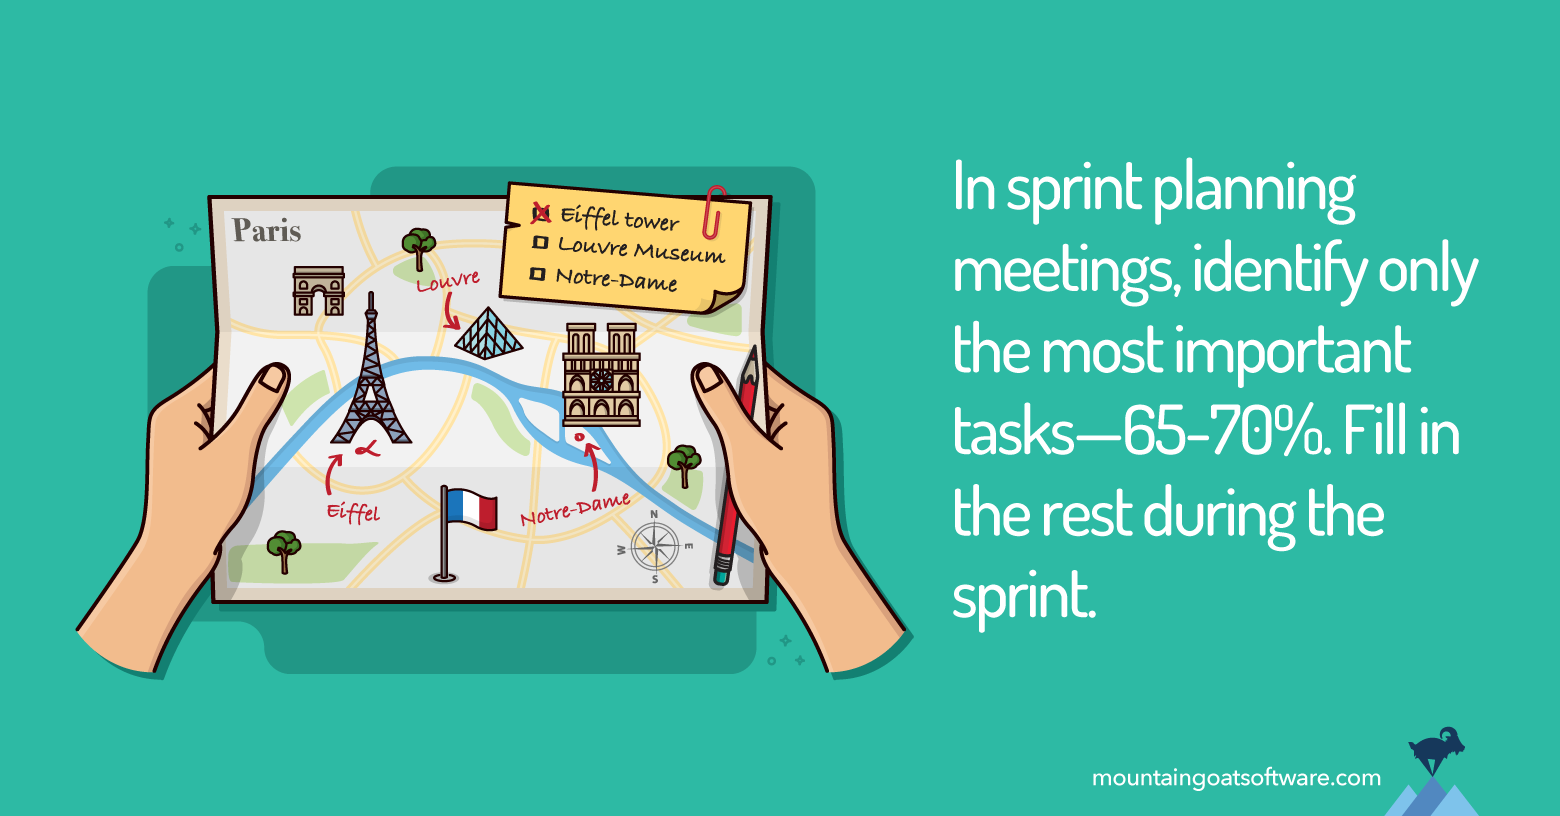 Your Team Won't Think of Everything in Sprint Planning Meetings. And That's OK.